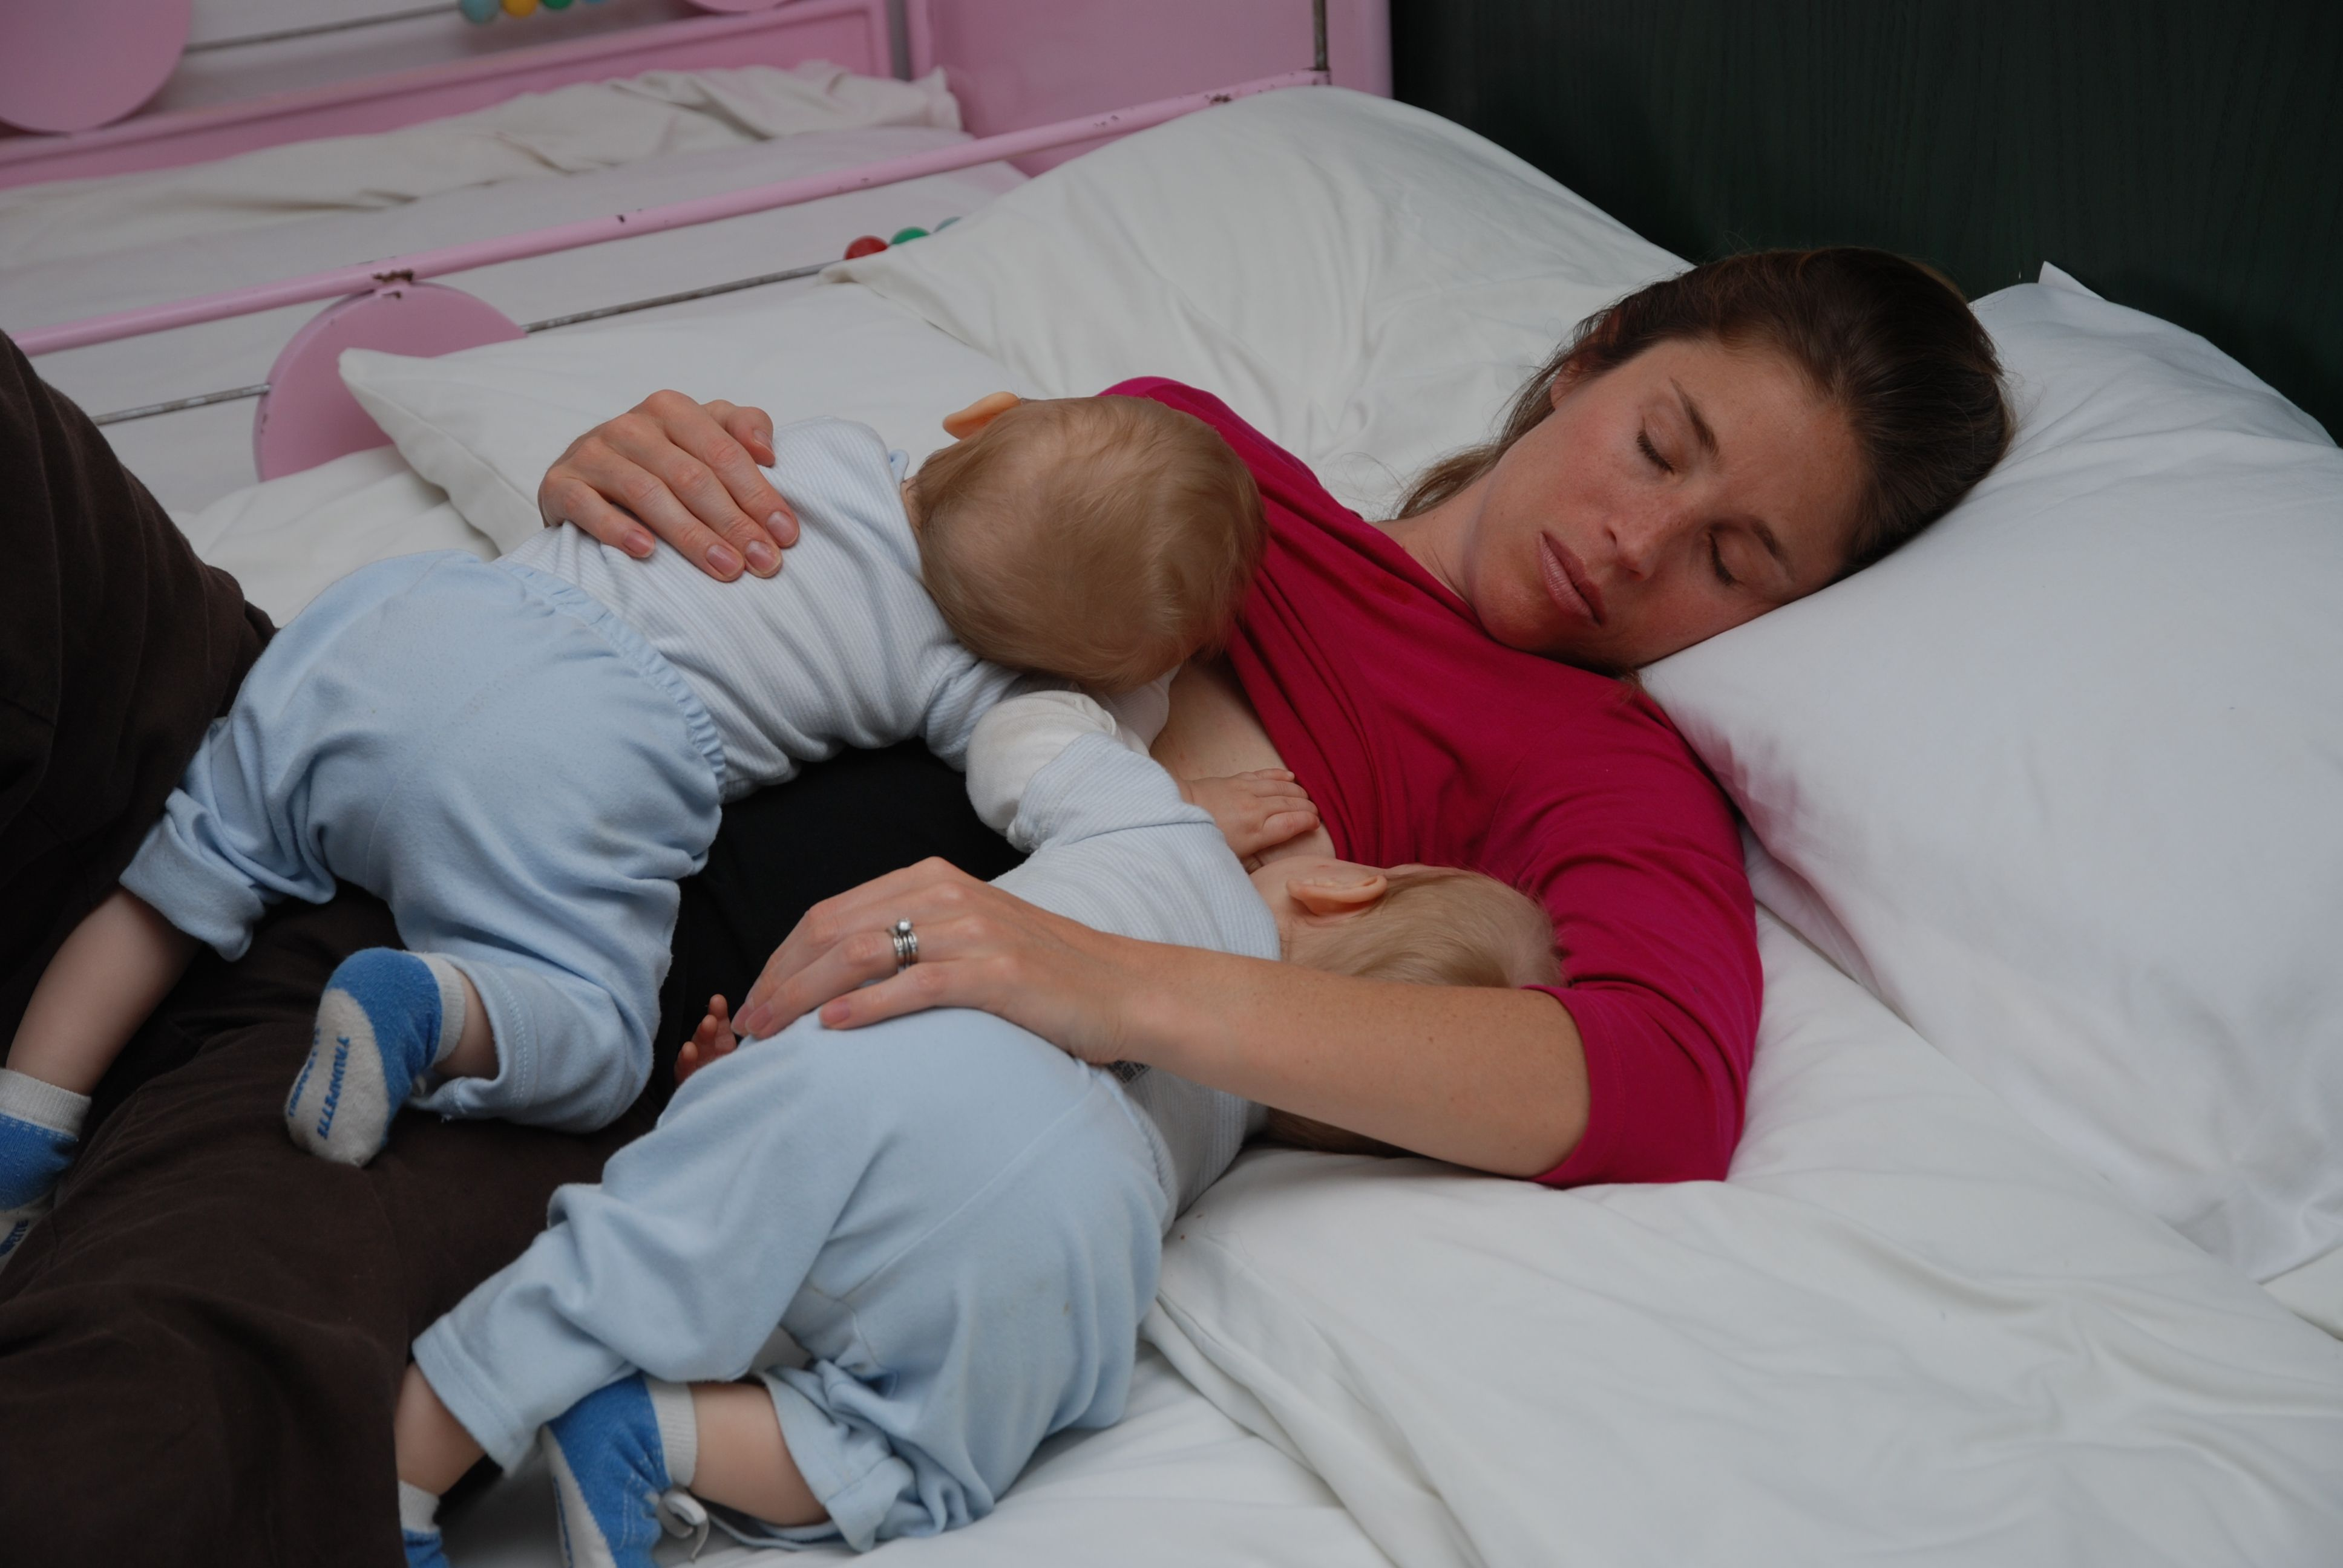 Falling Asleep at the Breast/Bottle - AAPorg